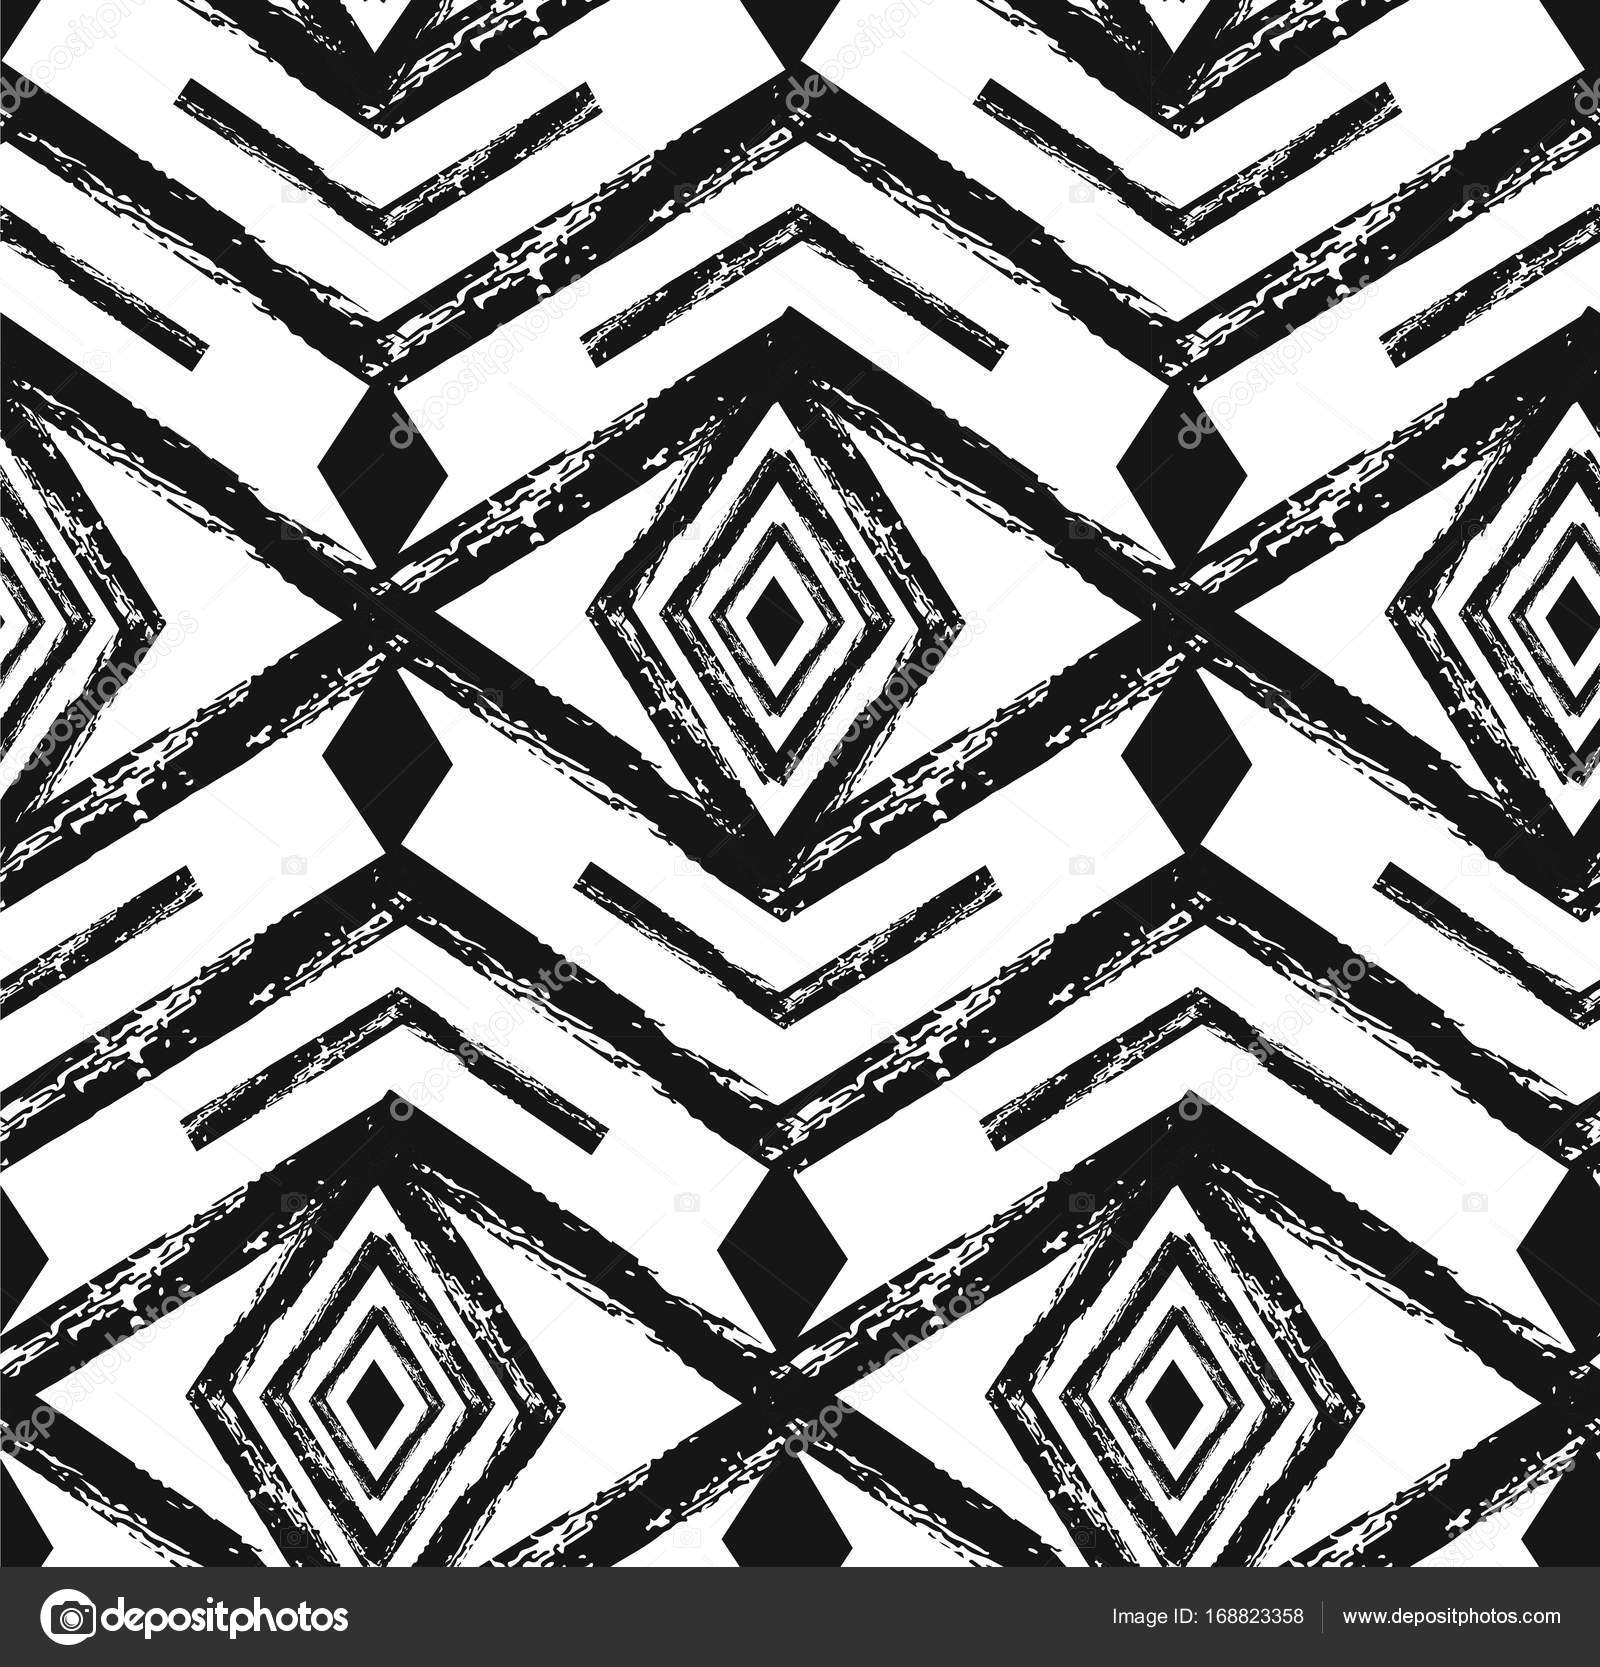 Black Tribal Navajo Vector Seamless Pattern With Doodle Elements Aztec Abstract Geometric Art Print Ethnic Hipster Backdrop Wallpaper Cloth Design